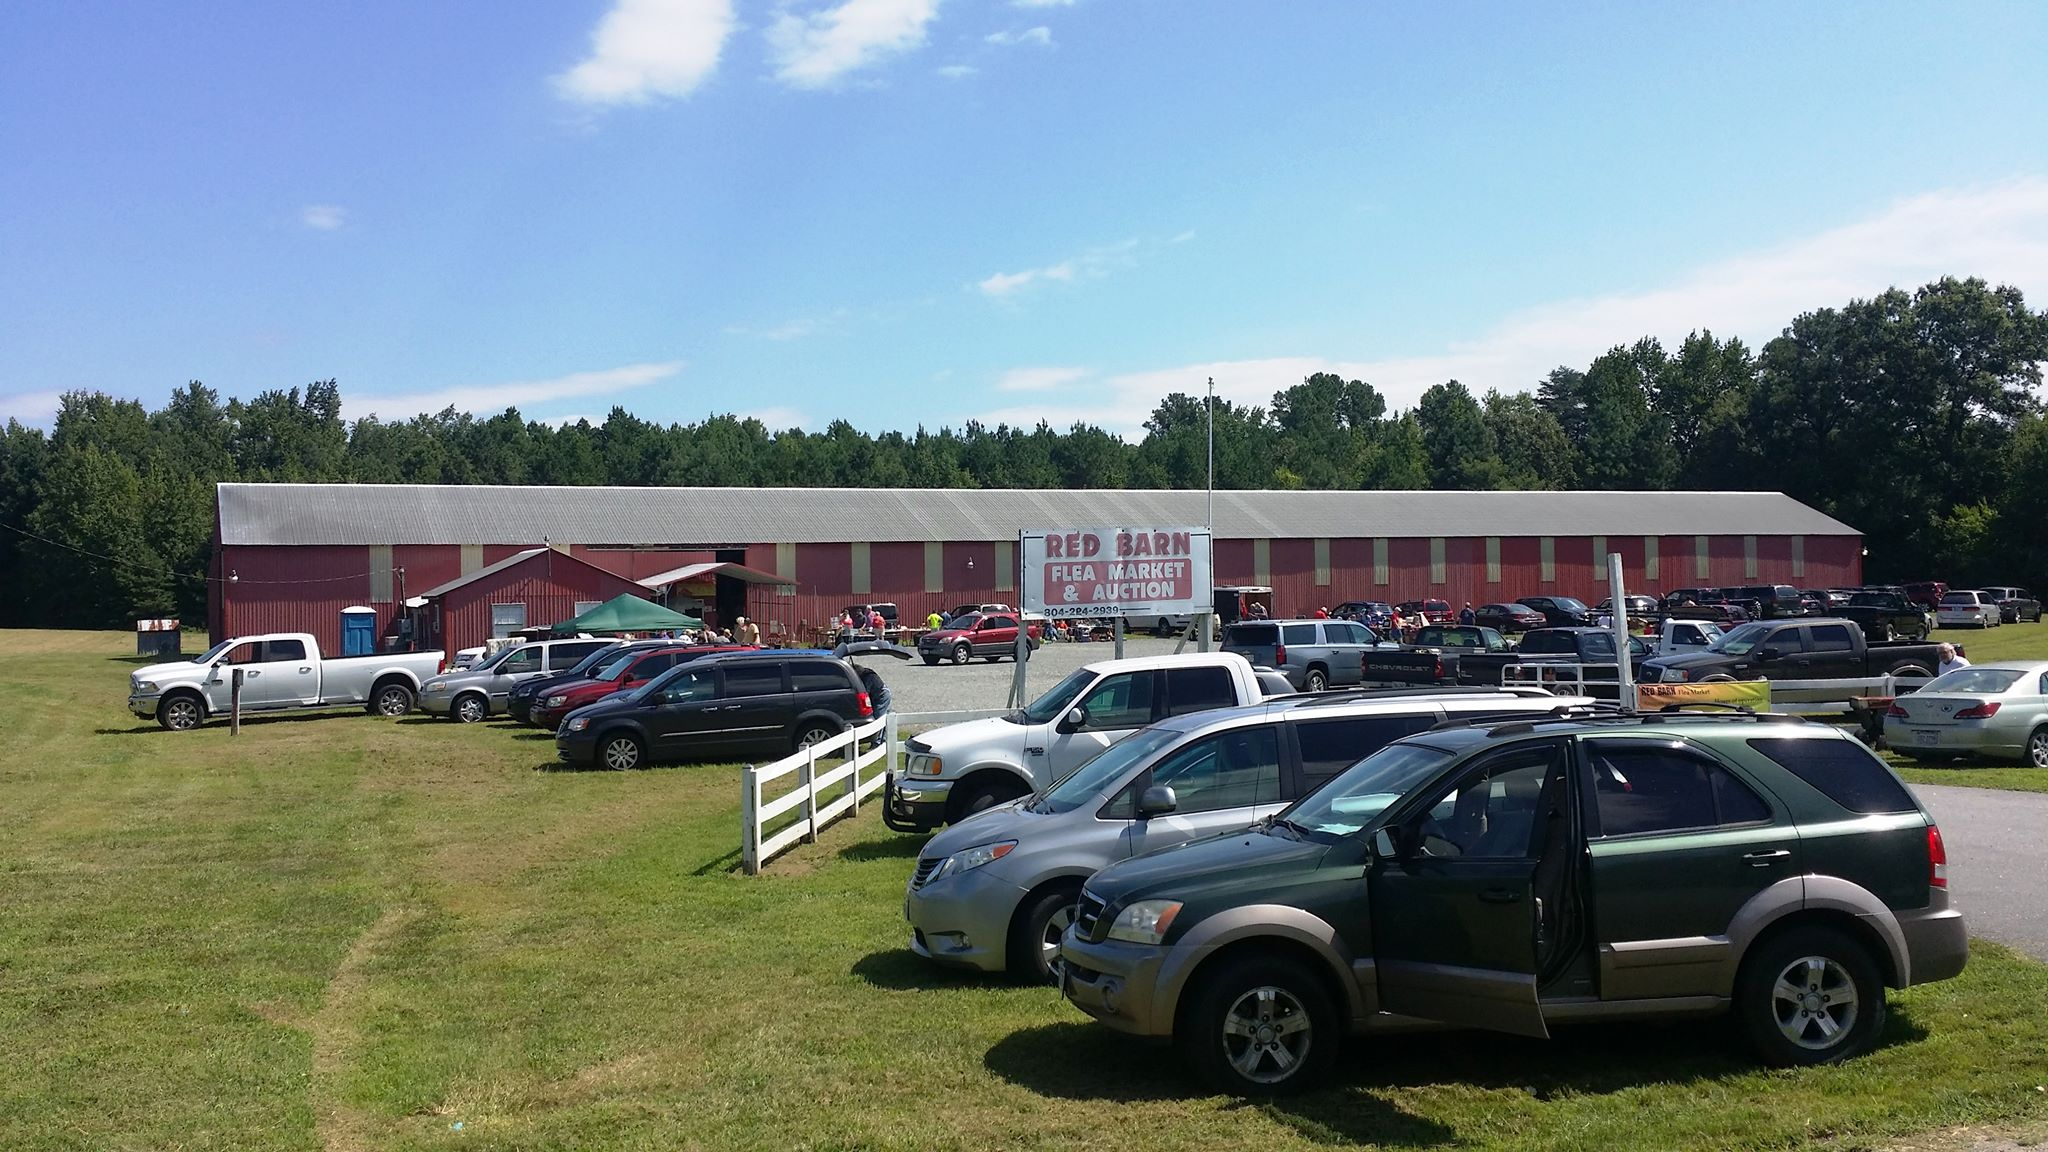 Big Outdoor Yard Sale in Northern Neck, Virginia